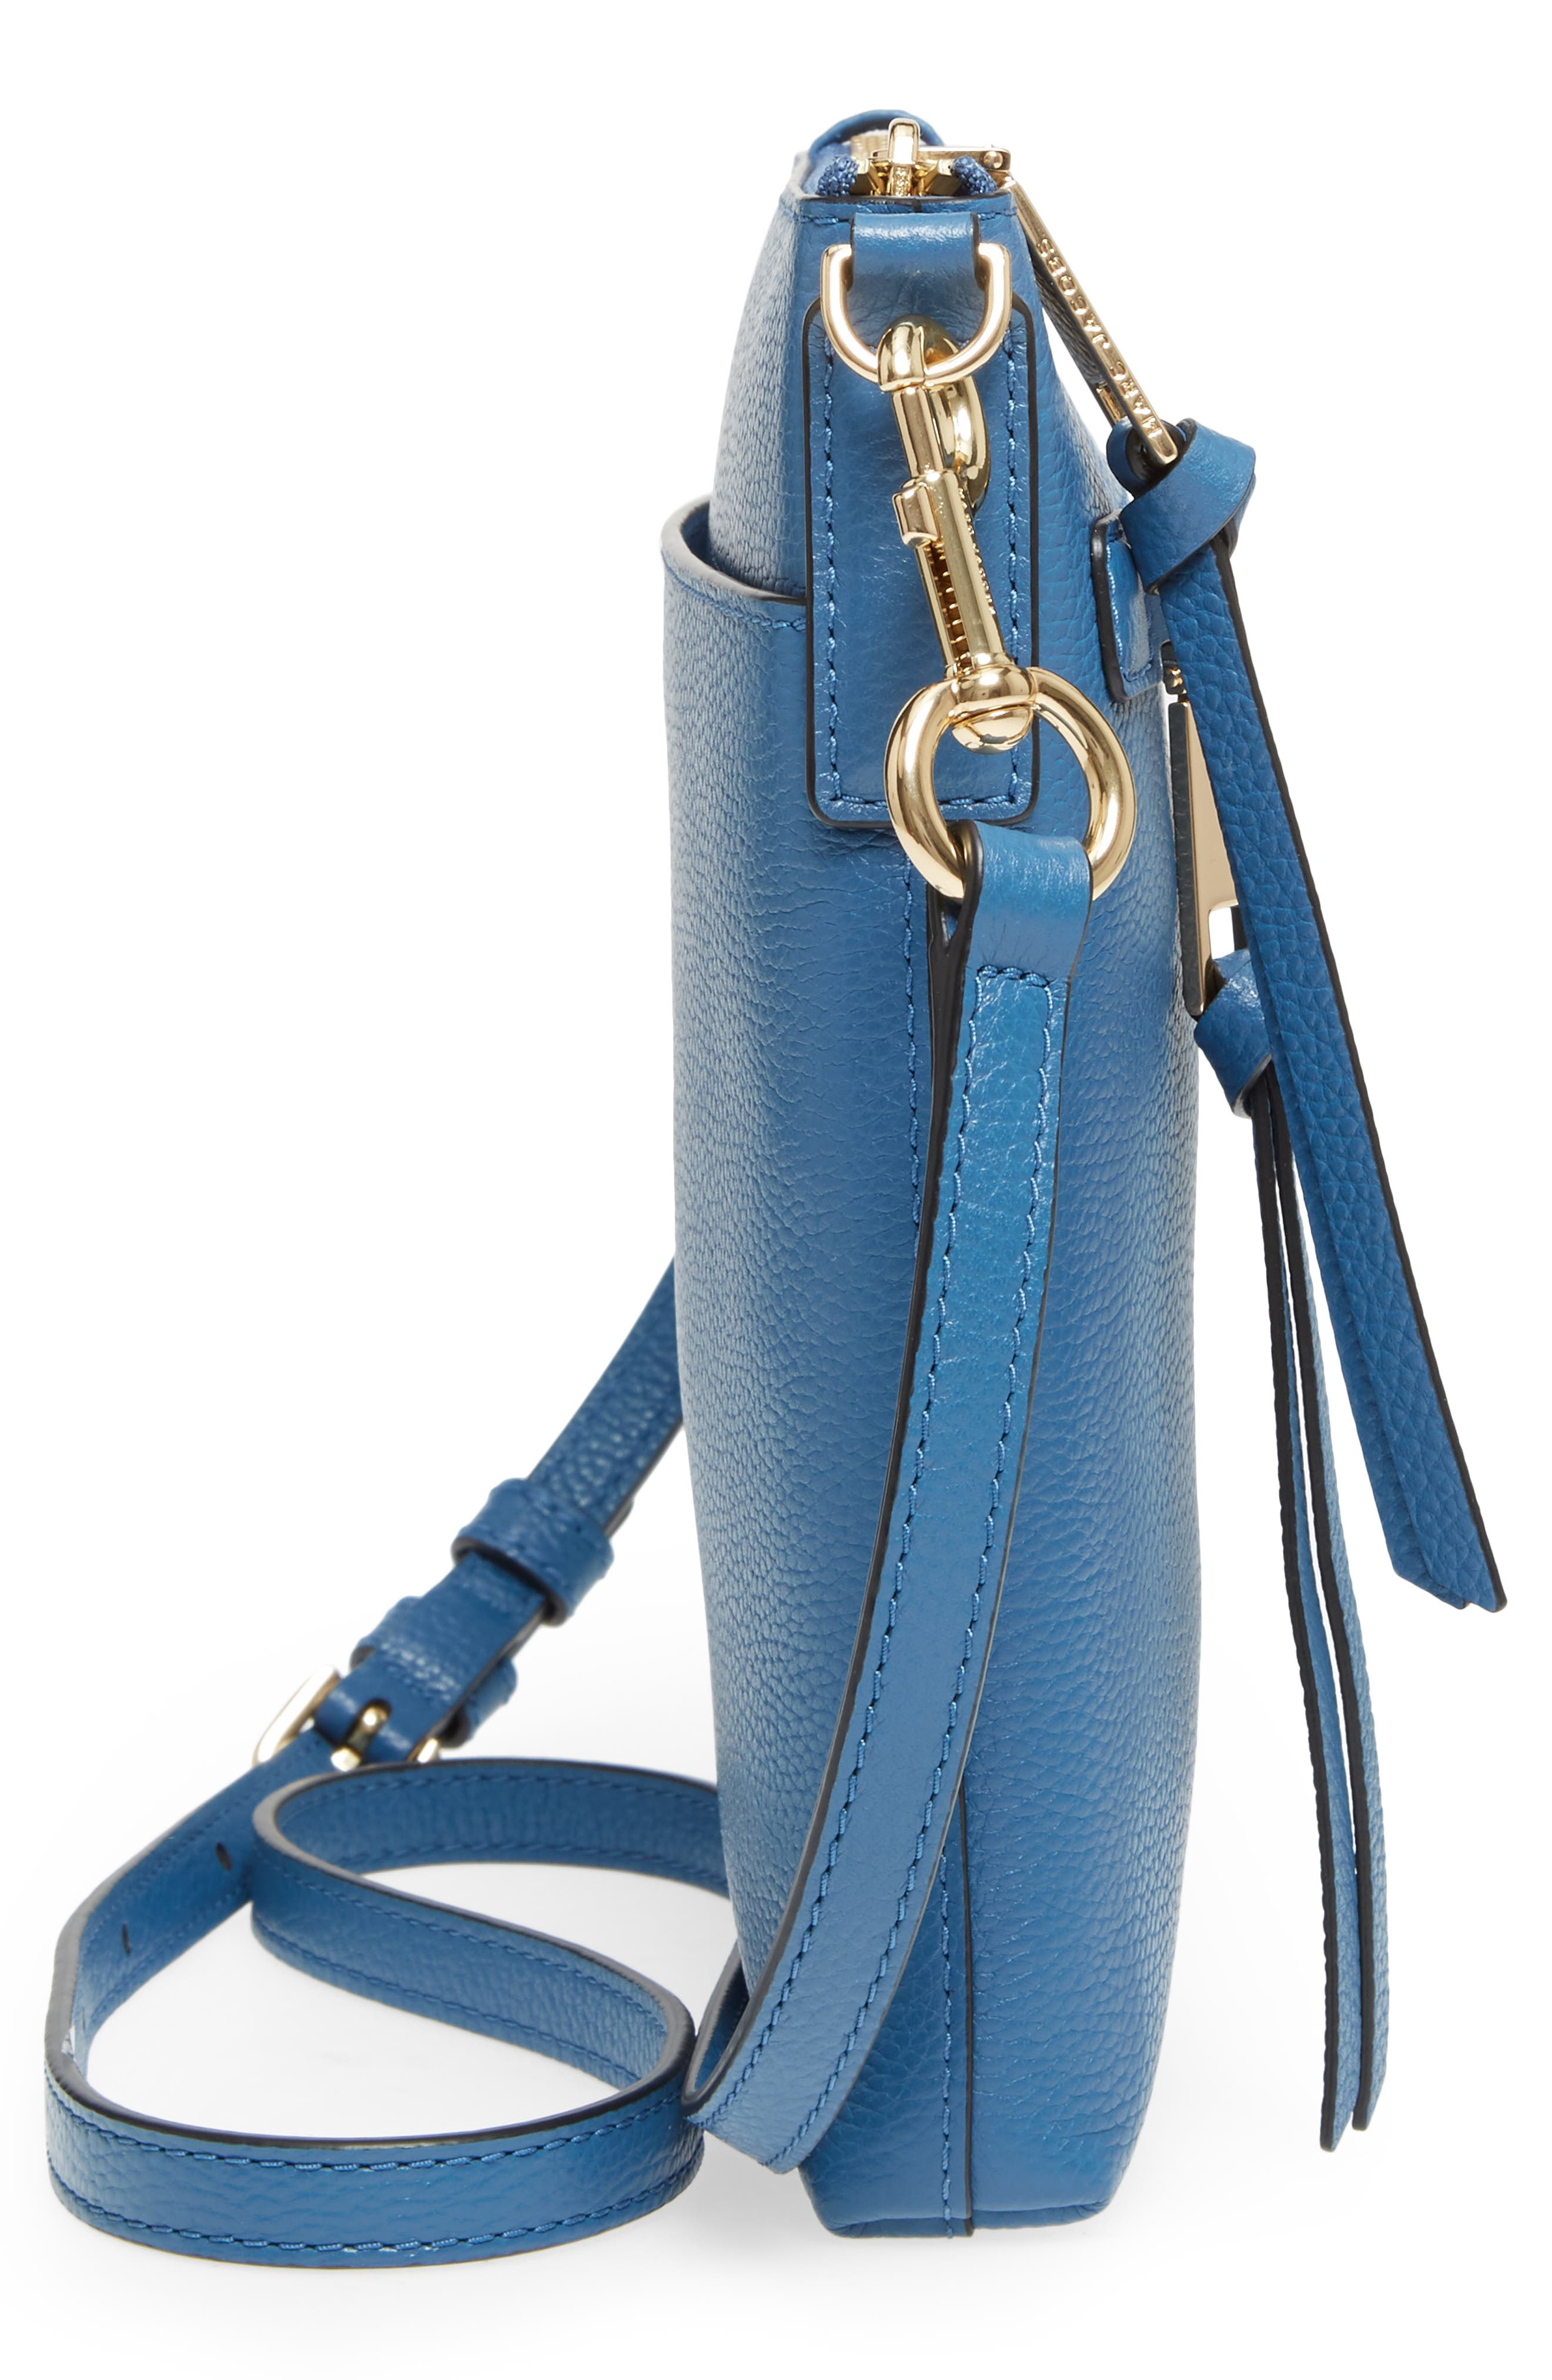 Recruit North/South Leather Crossbody Bag,                             Alternate thumbnail 5, color,                             476